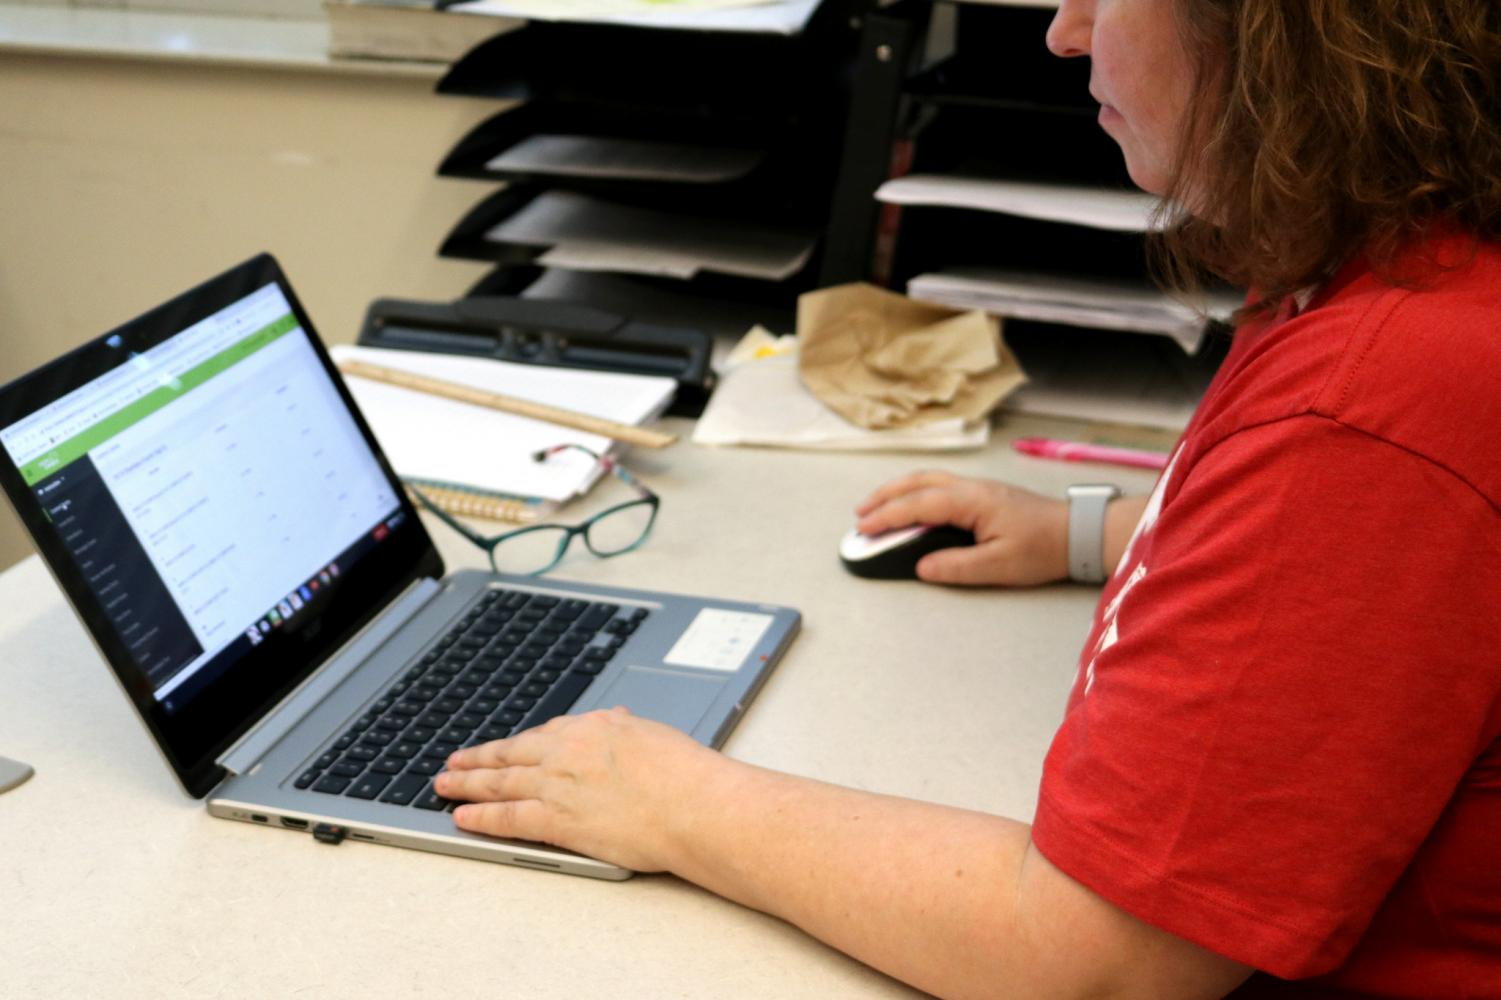 English teacher Jennifer Andriano visits Infinite Campus, used to view and input student grades.